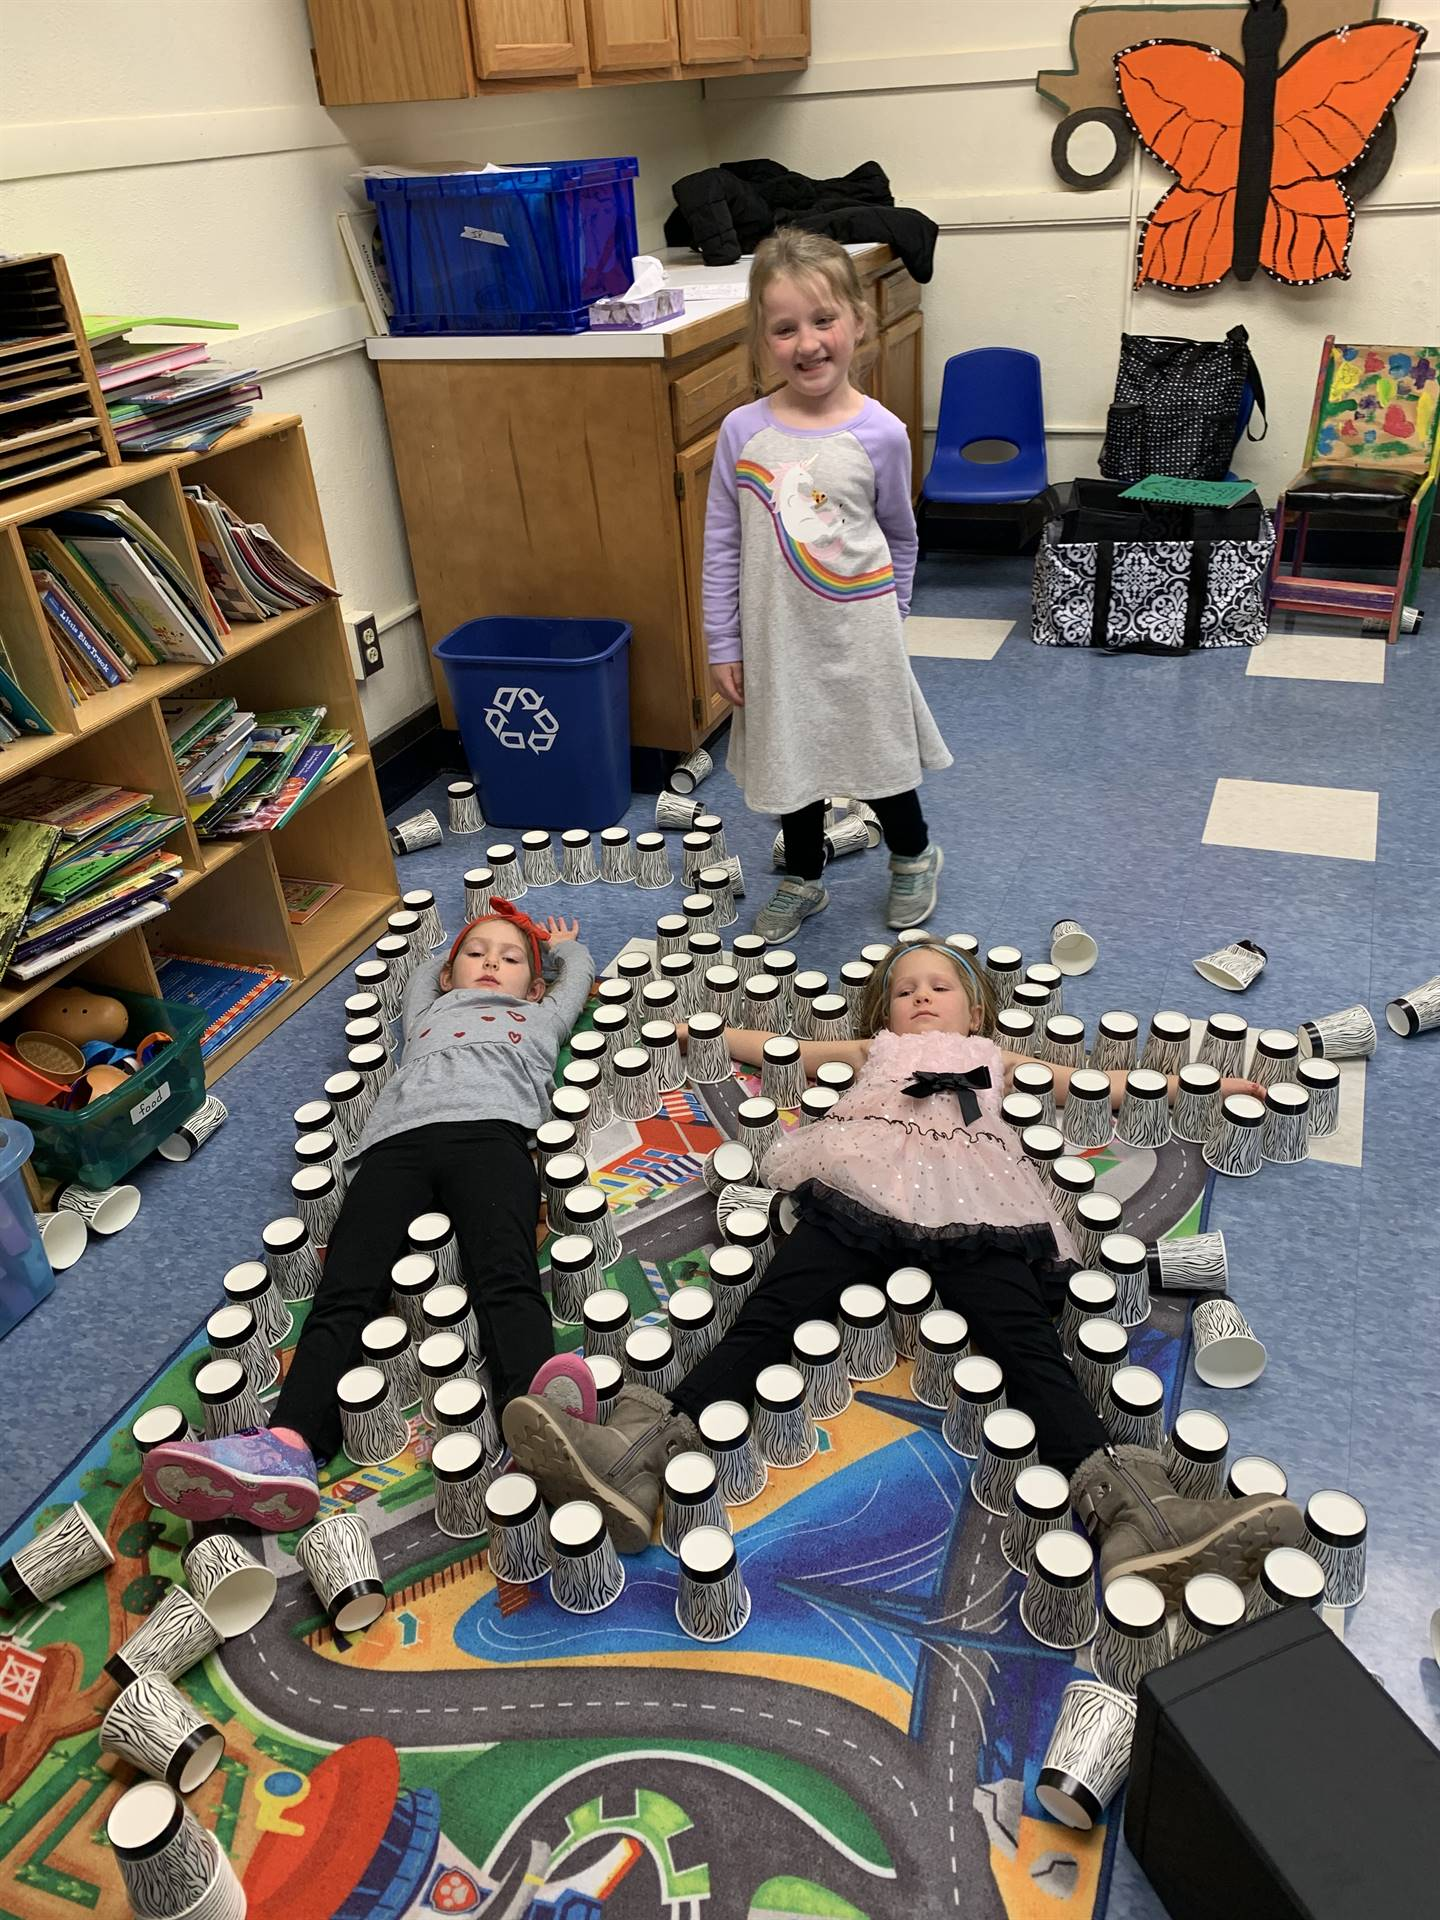 2 students lay on floor outlined by cups.